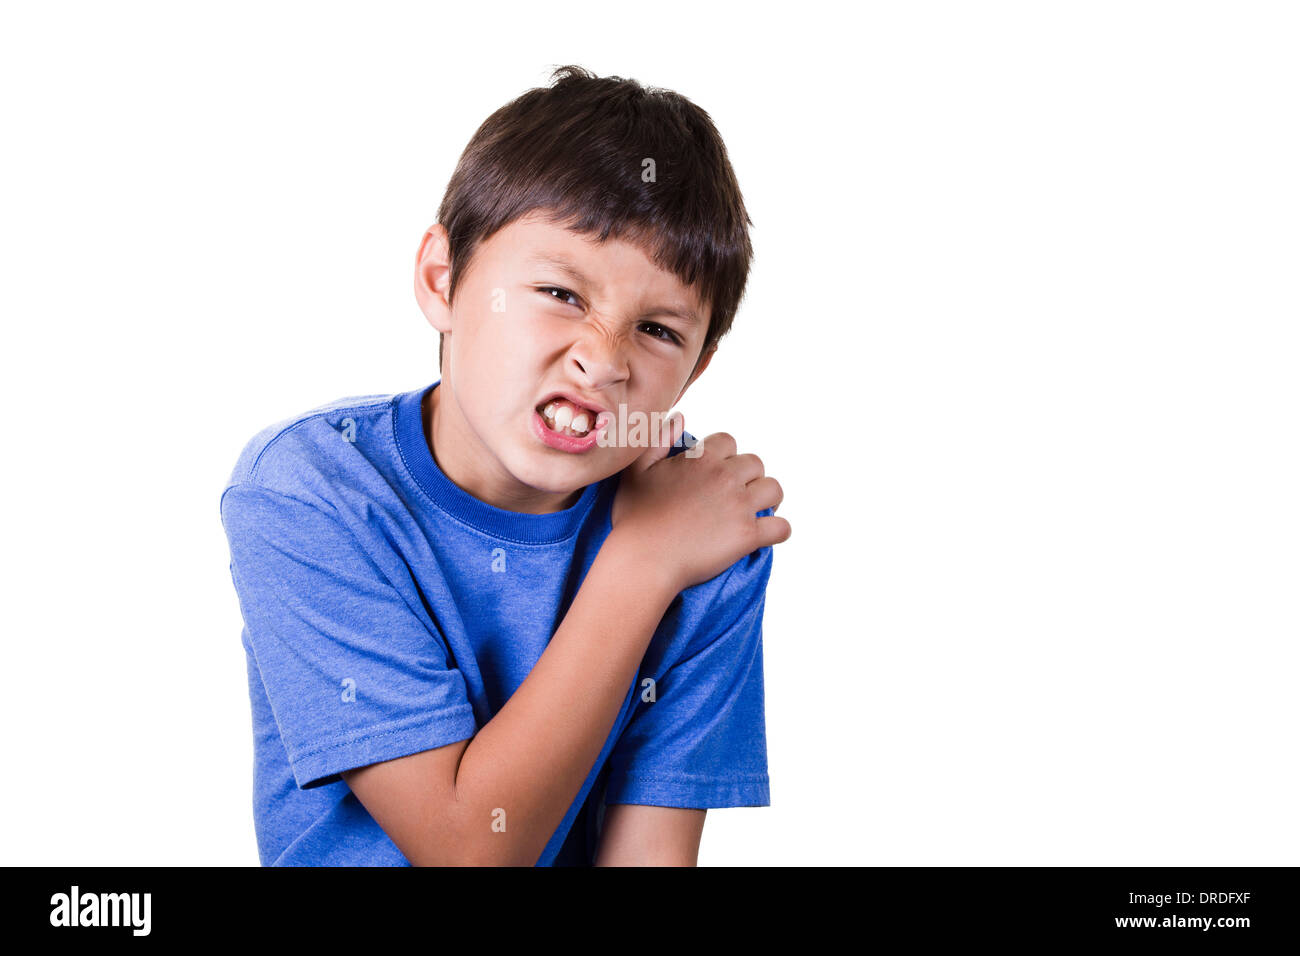 Boy with hurt sprained shoulder - on white background - Stock Image